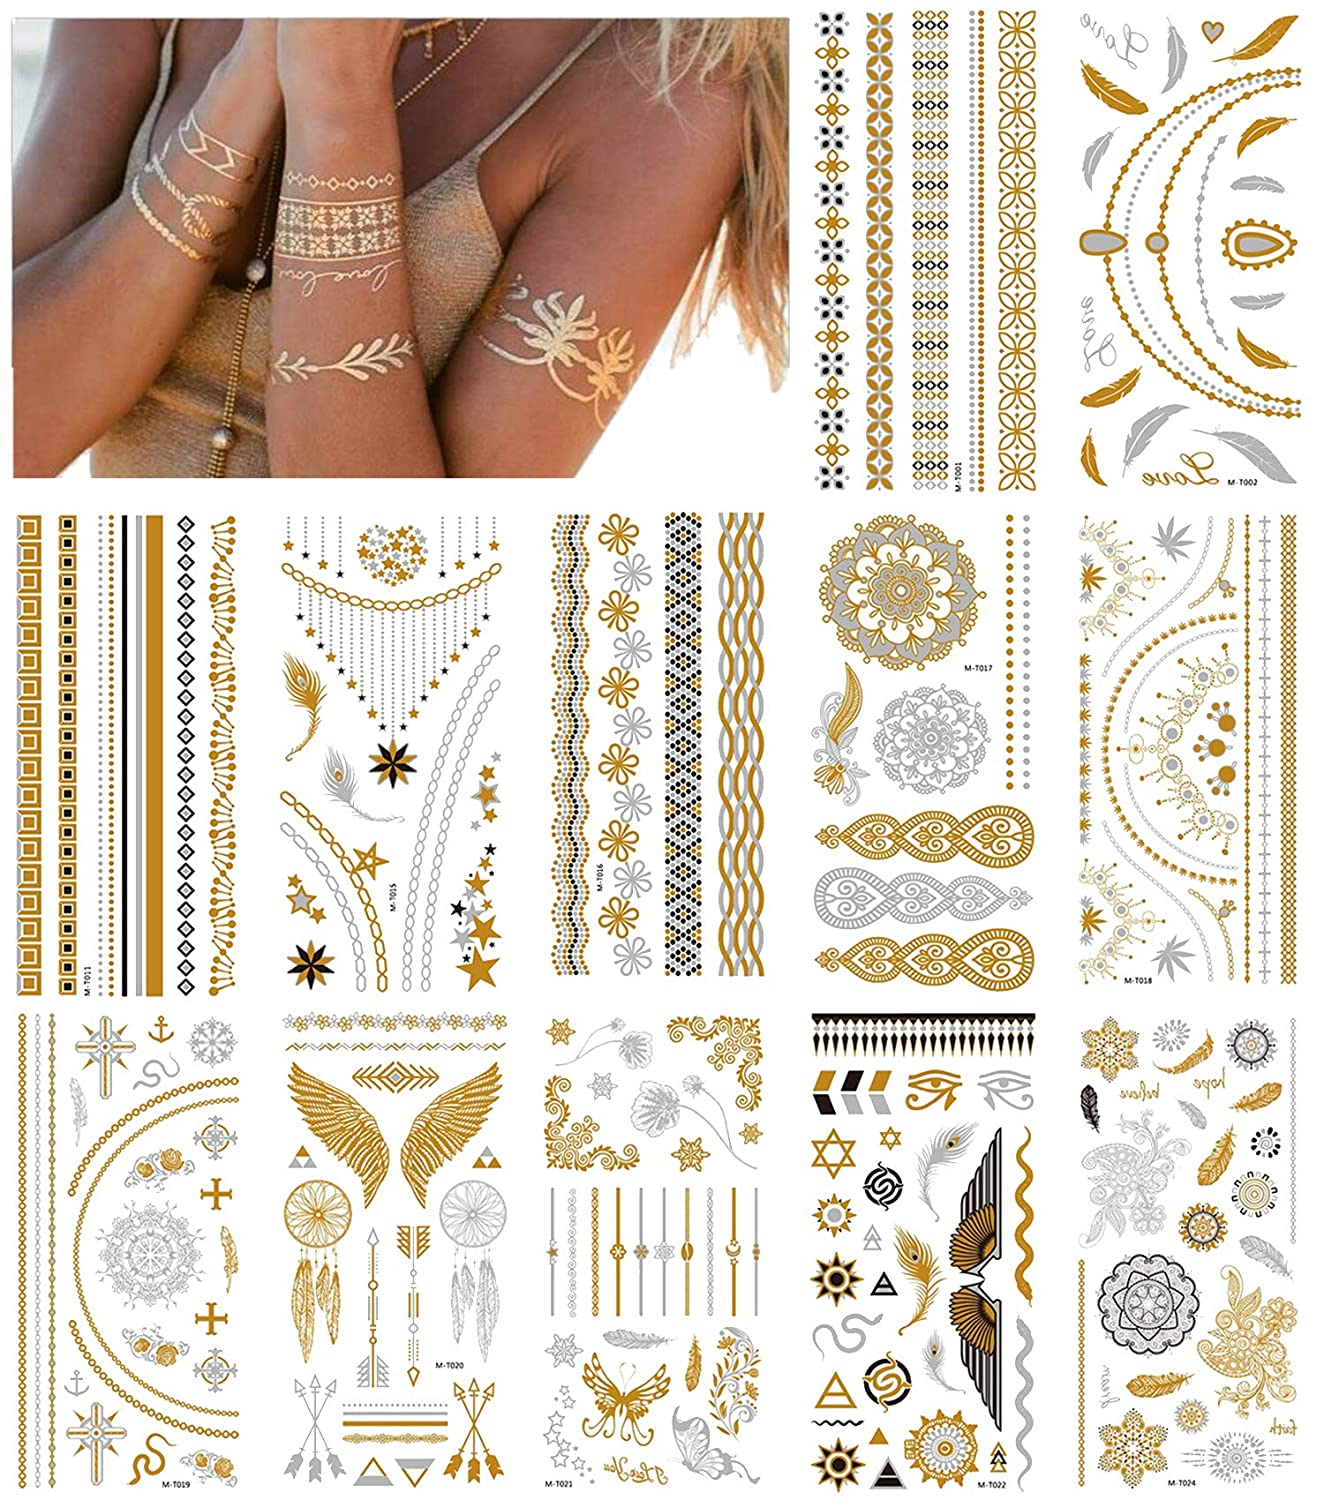 NEPAK 12 Sheets Metal Tattoo Ttickers,Metal Temporary Tattoos Stickers,Glittering Waterproof Fake Tattoo Stickers,Suitable for Adults Or Children